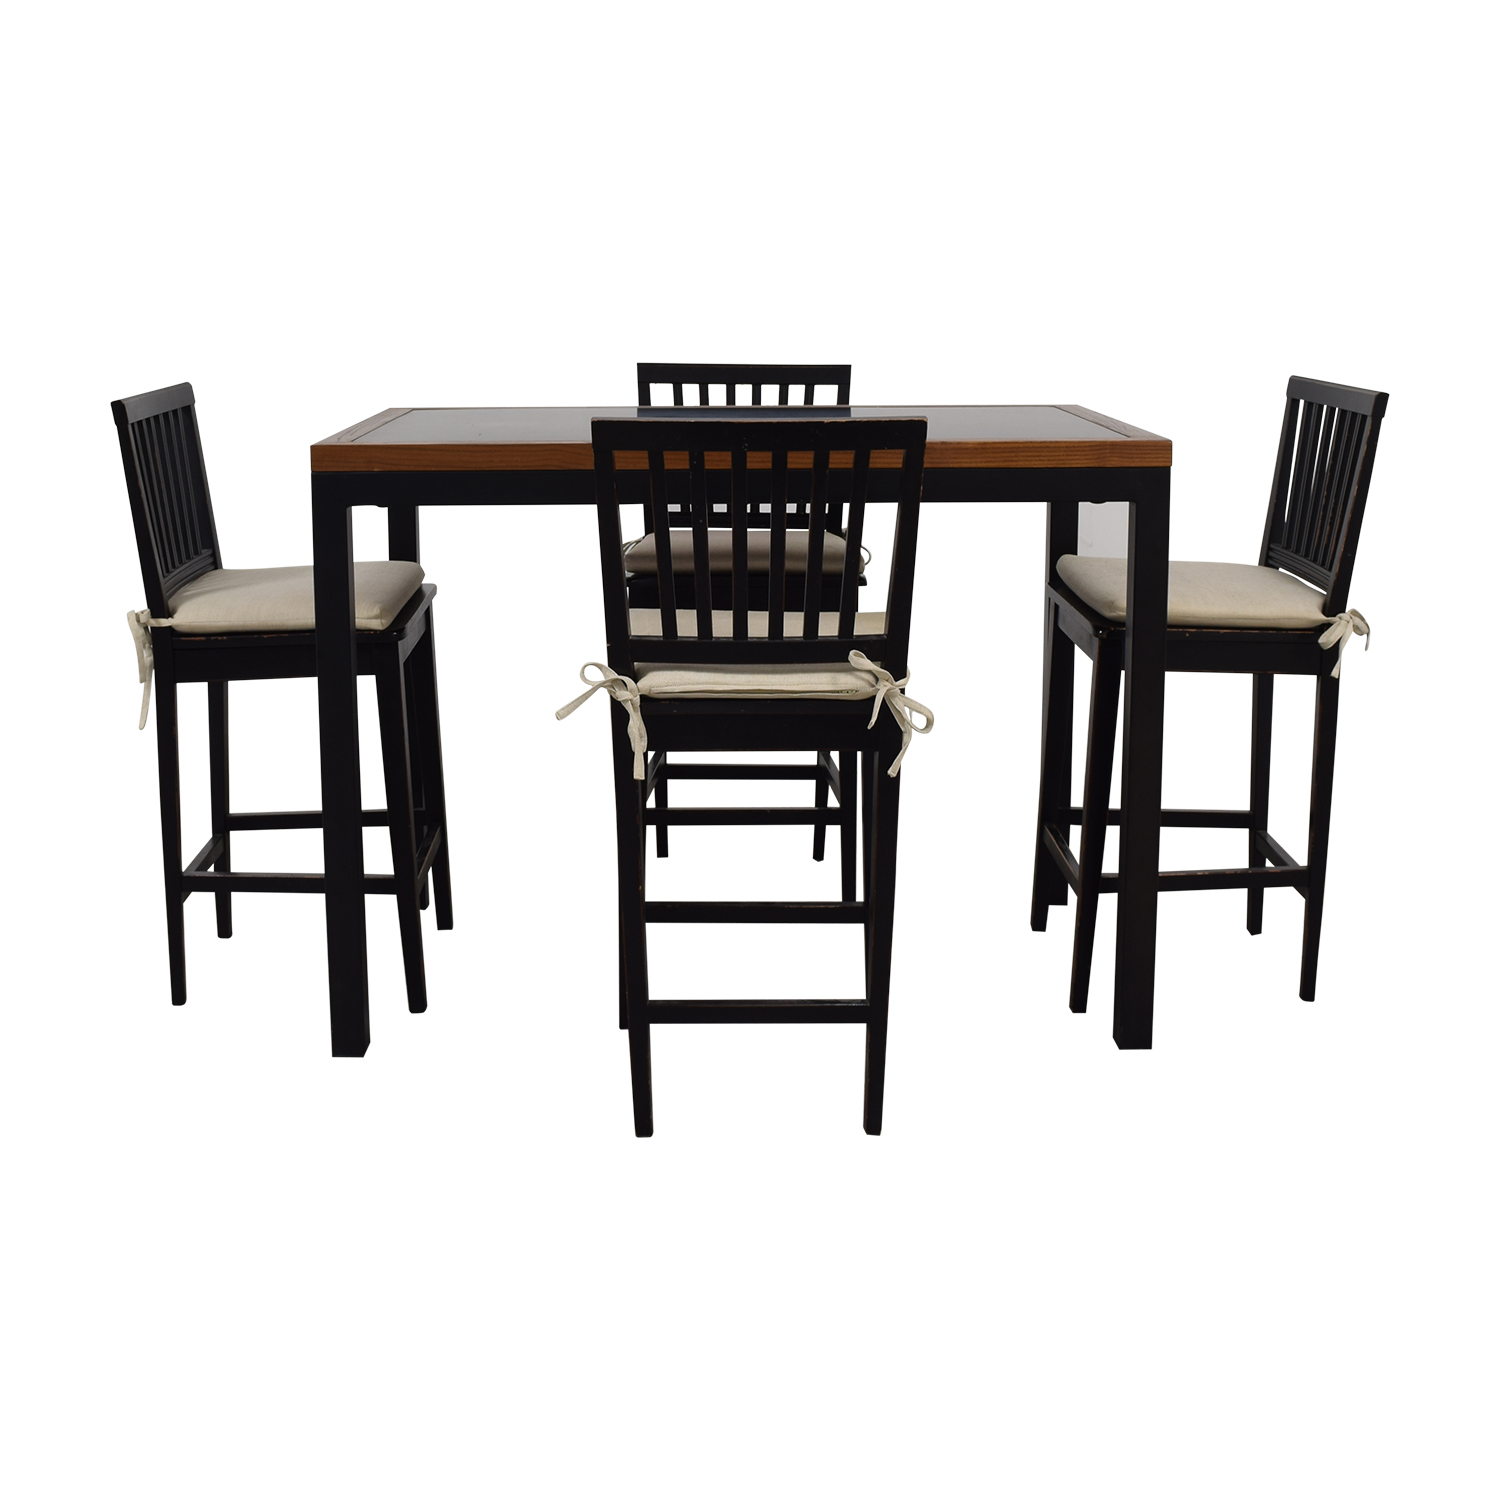 Crate & Barrel Crate & Barrel Parsons Counter High Dining Table coupon